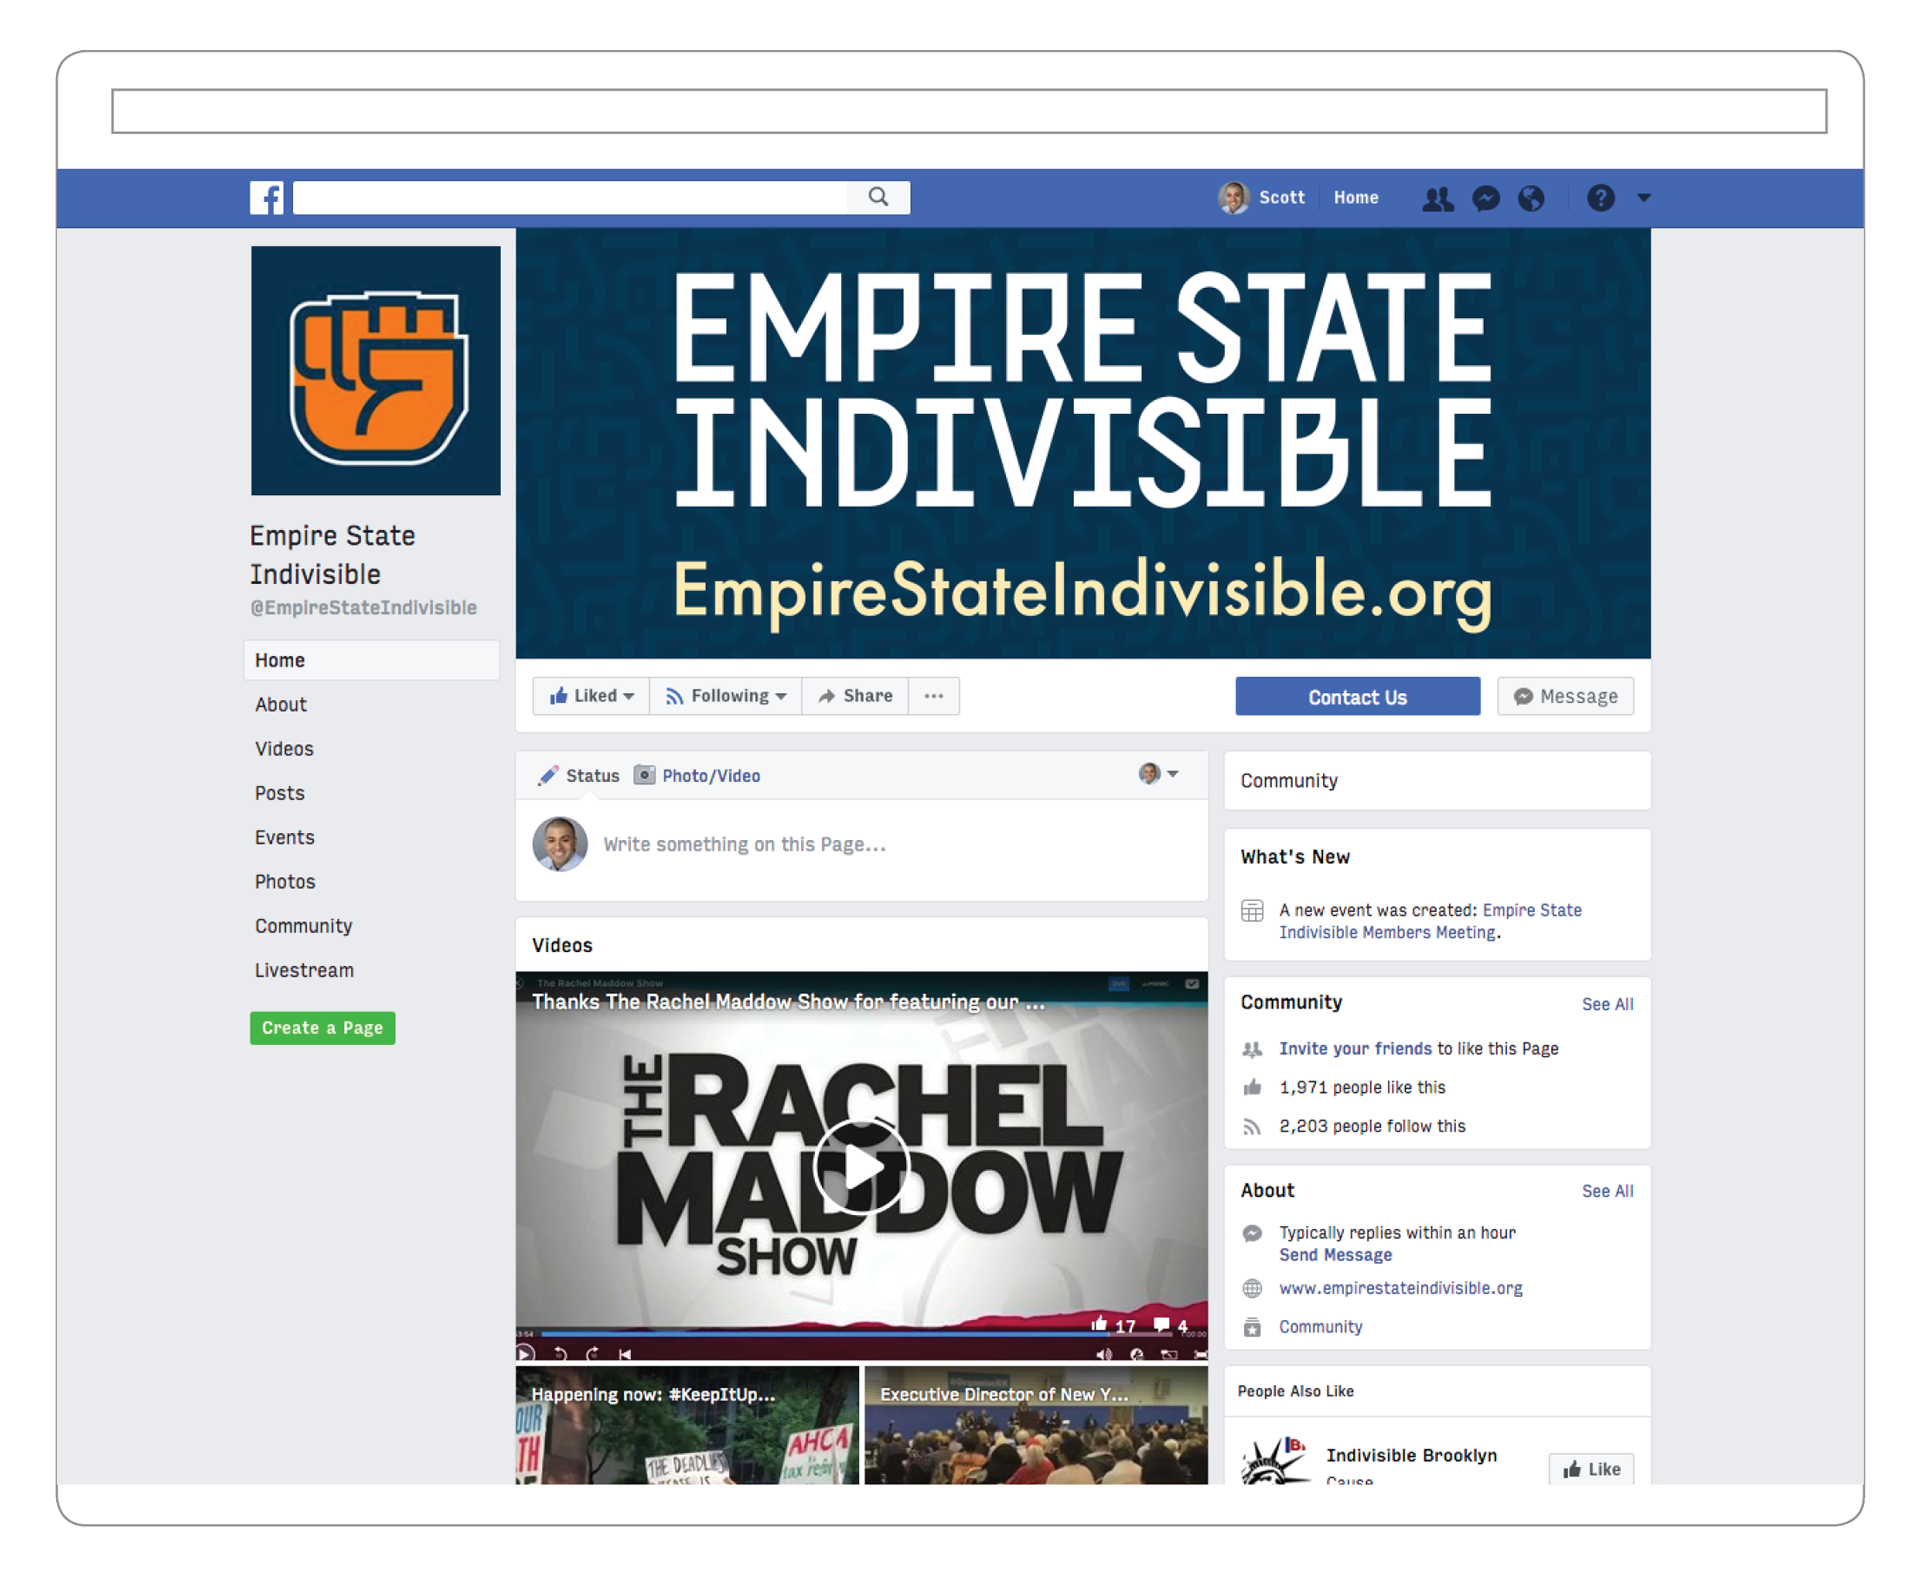 Empire State Indivisible Facebook